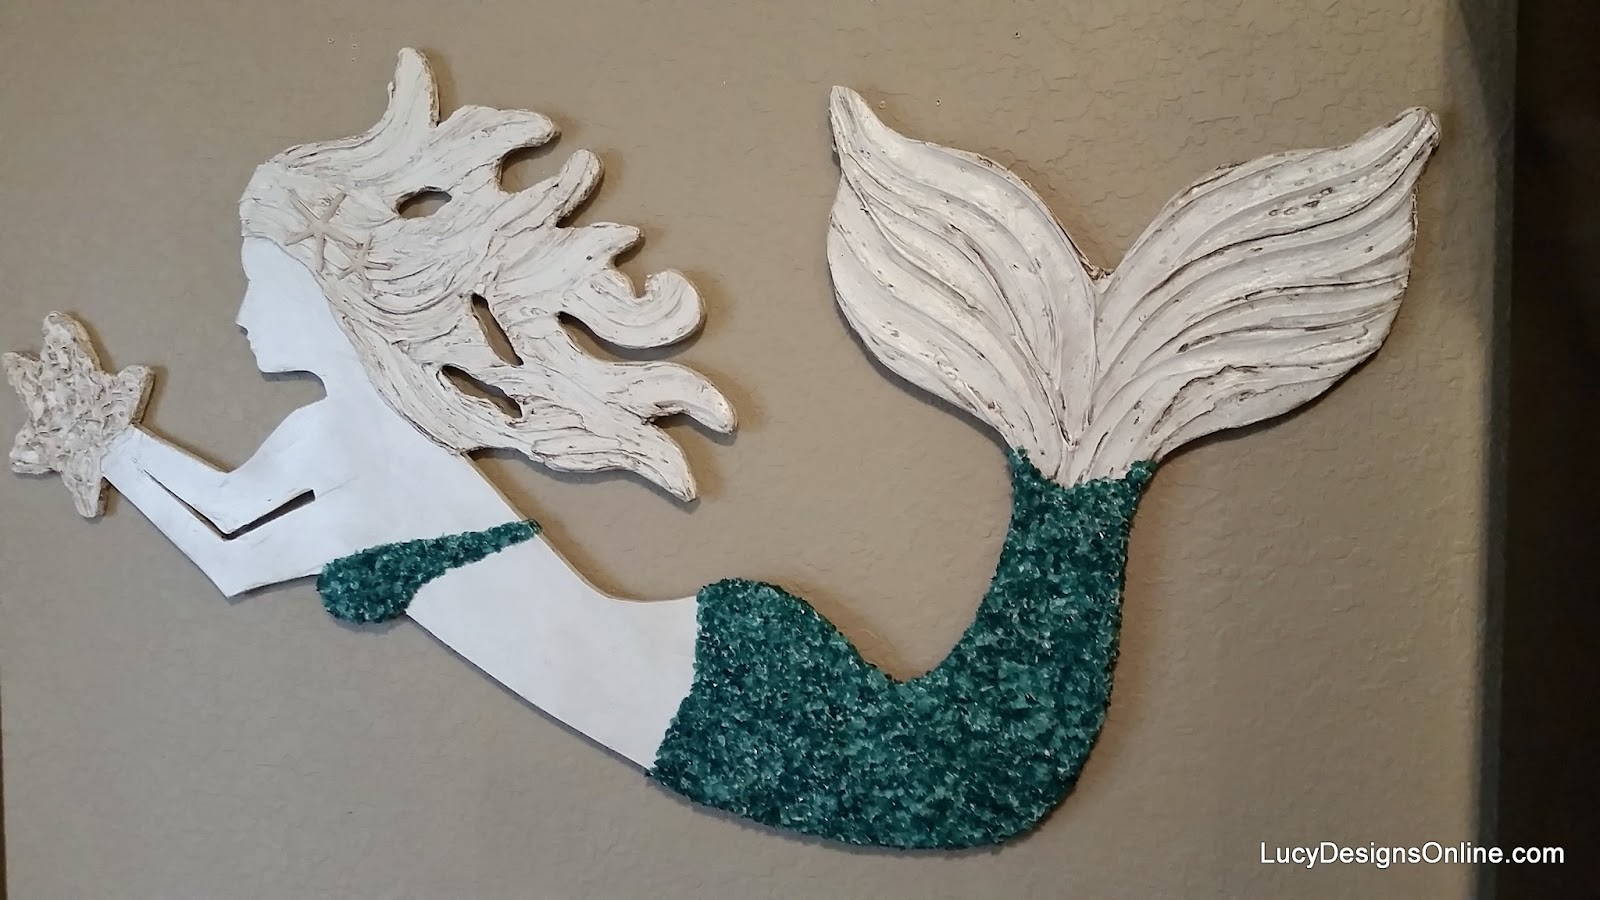 4ft mermaid art with crushed glass